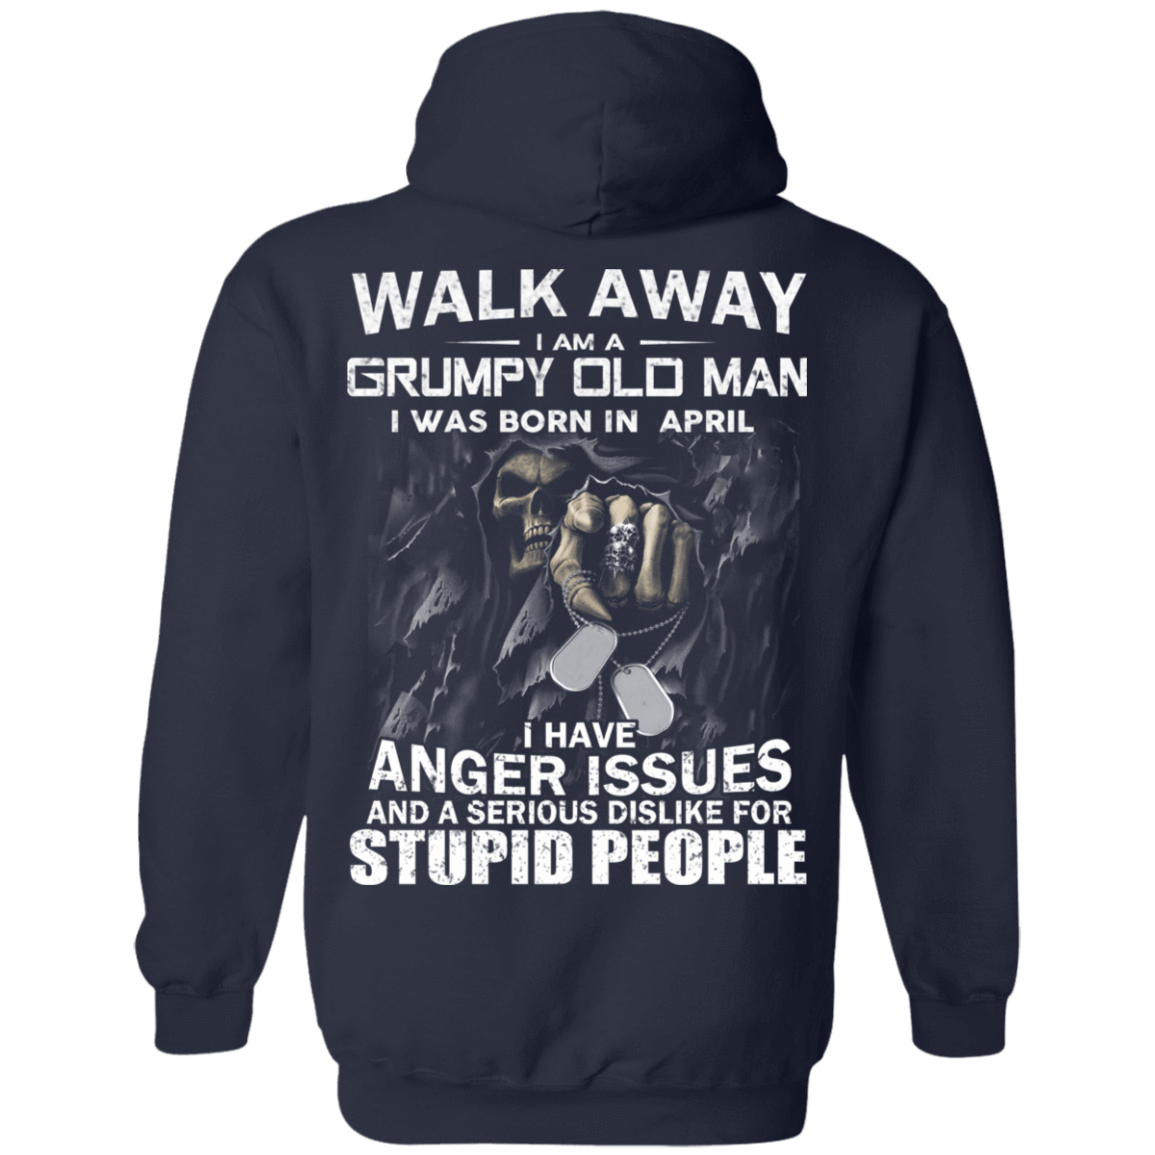 I Am A Grumpy Old Man I Was Born In April T-Shirts, Hoodies, Tank 541-4742-80688249-23135 - Tee Ript